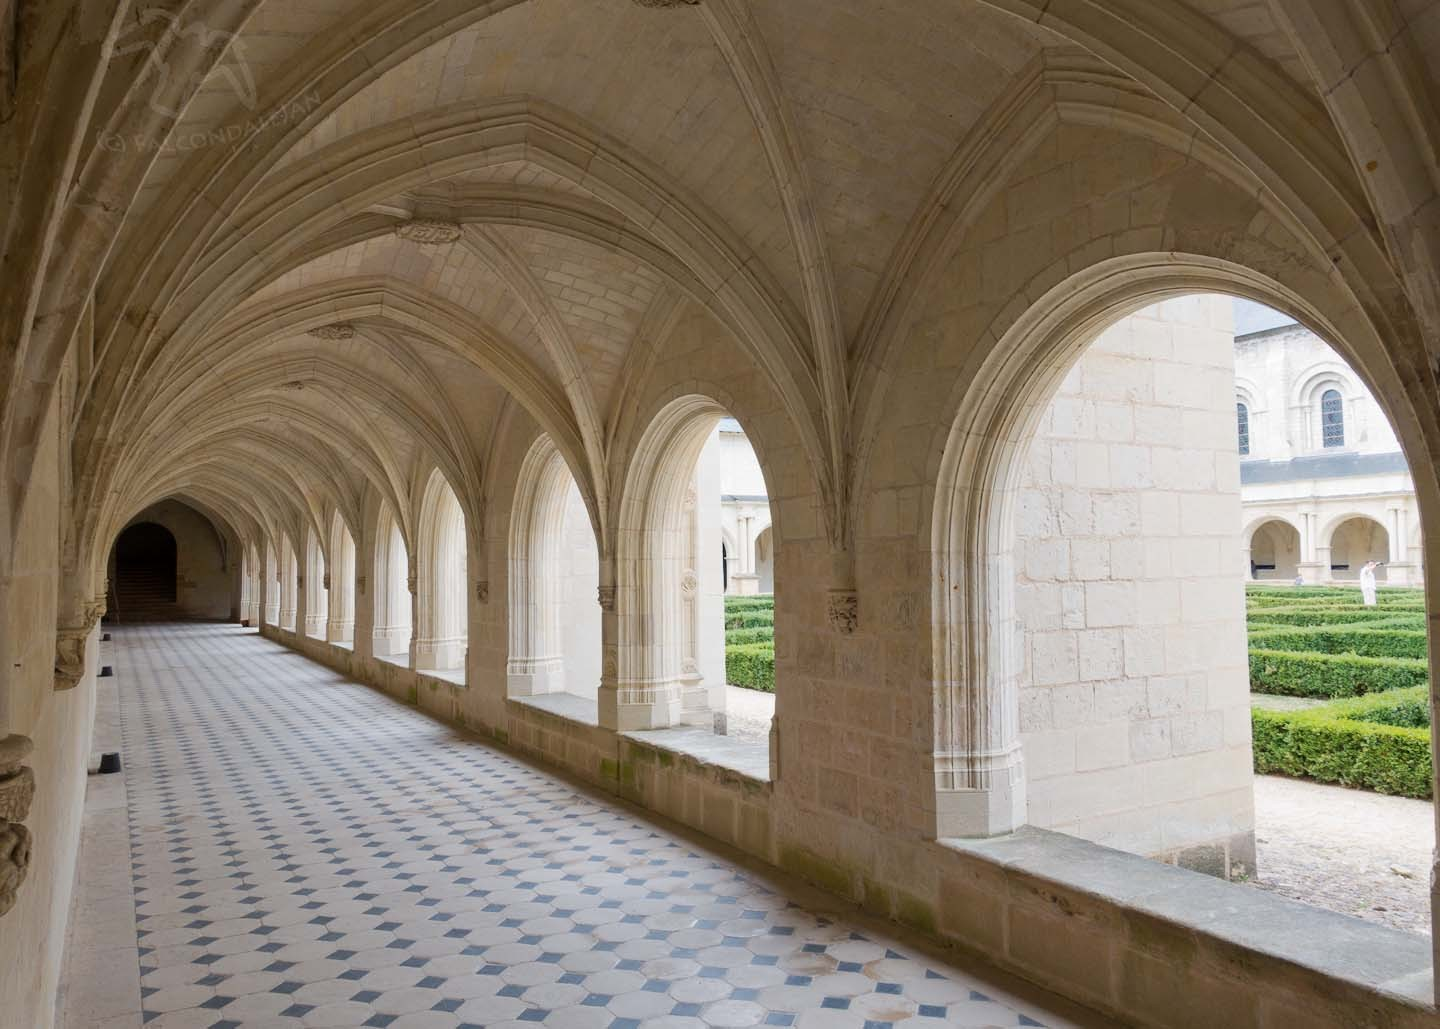 Fontevraud Abbey in the Loire Valley - Restoration Pictured on Falcondale Life blog. This French abbey isn't an ancient ruin but has been kept in use over the centuries. Unsympathetic restoration? Plantagenet burials and photography tips.